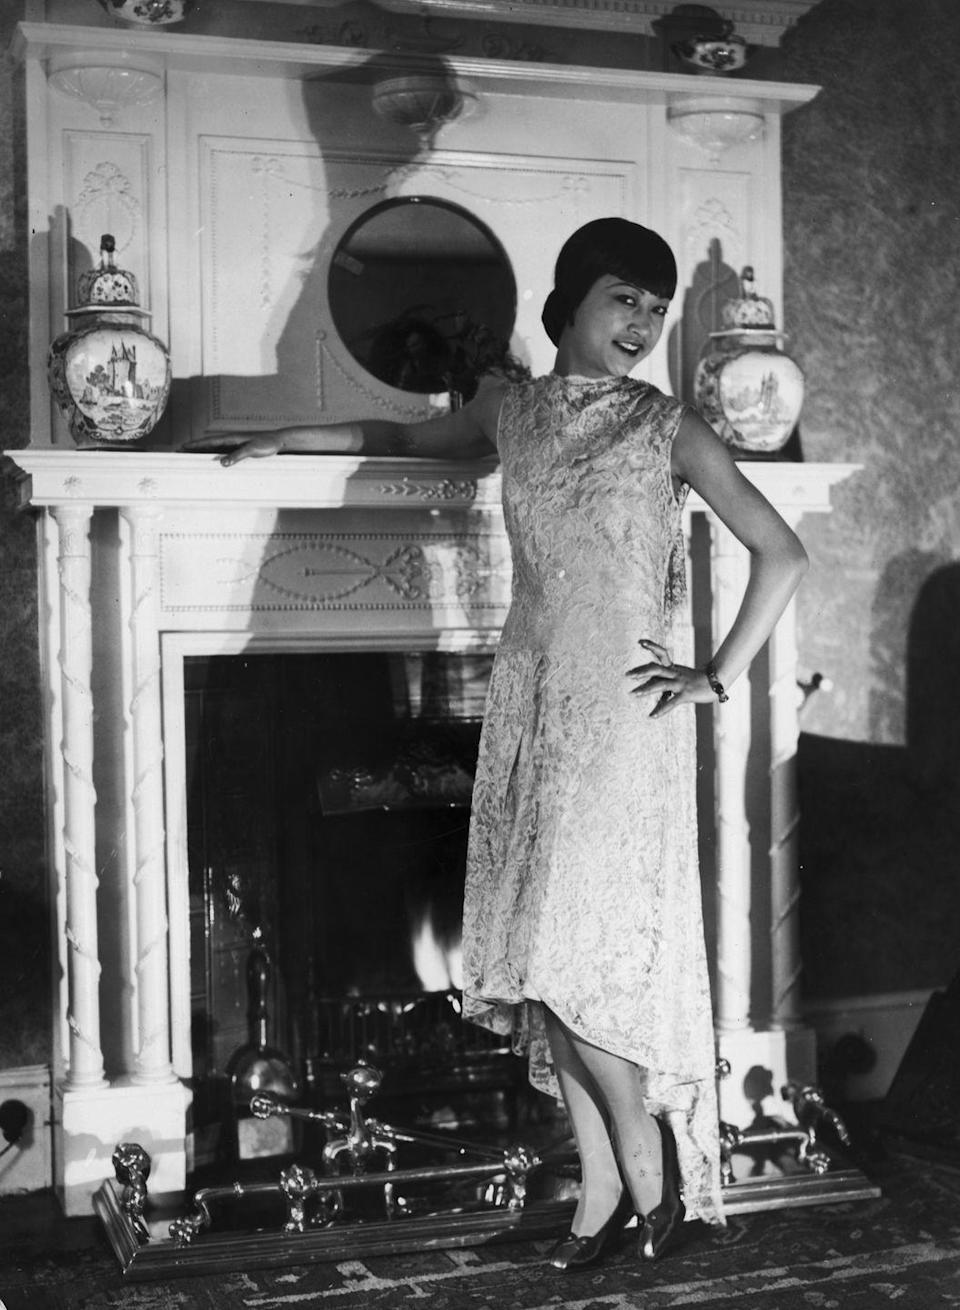 """<p>Chinese-American film star Anna May Wong poses for the camera in front of a grand fireplace in her London apartment. The actress, who became a fixture on-screen in the '20s, <a href=""""https://www.notablebiographies.com/We-Z/Wong-Anna-May.html"""" rel=""""nofollow noopener"""" target=""""_blank"""" data-ylk=""""slk:moved to London"""" class=""""link rapid-noclick-resp"""">moved to London</a> after becoming frustrated with the type of roles she was receiving in Hollywood. </p>"""